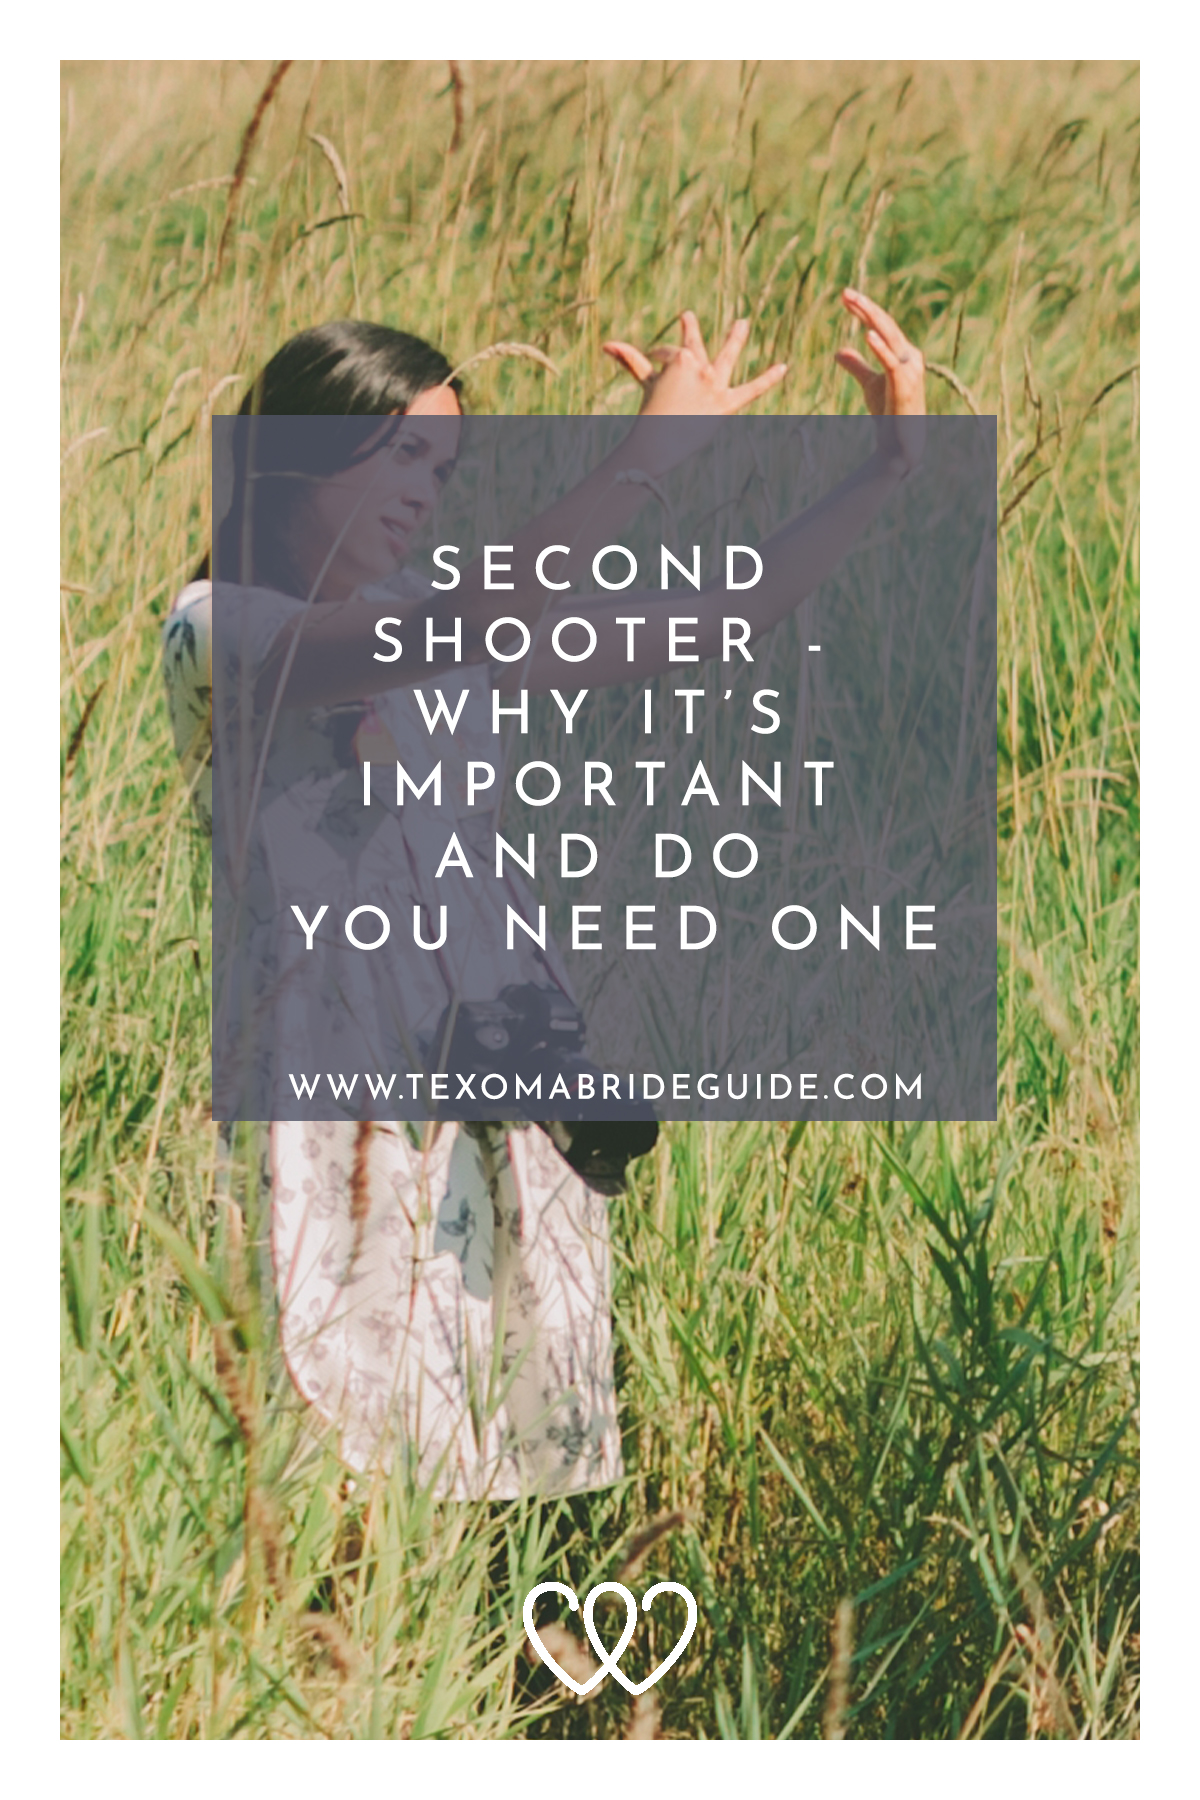 Second Shooter - Why It's Important And Do You Need One | Texoma Bride Guide Blog